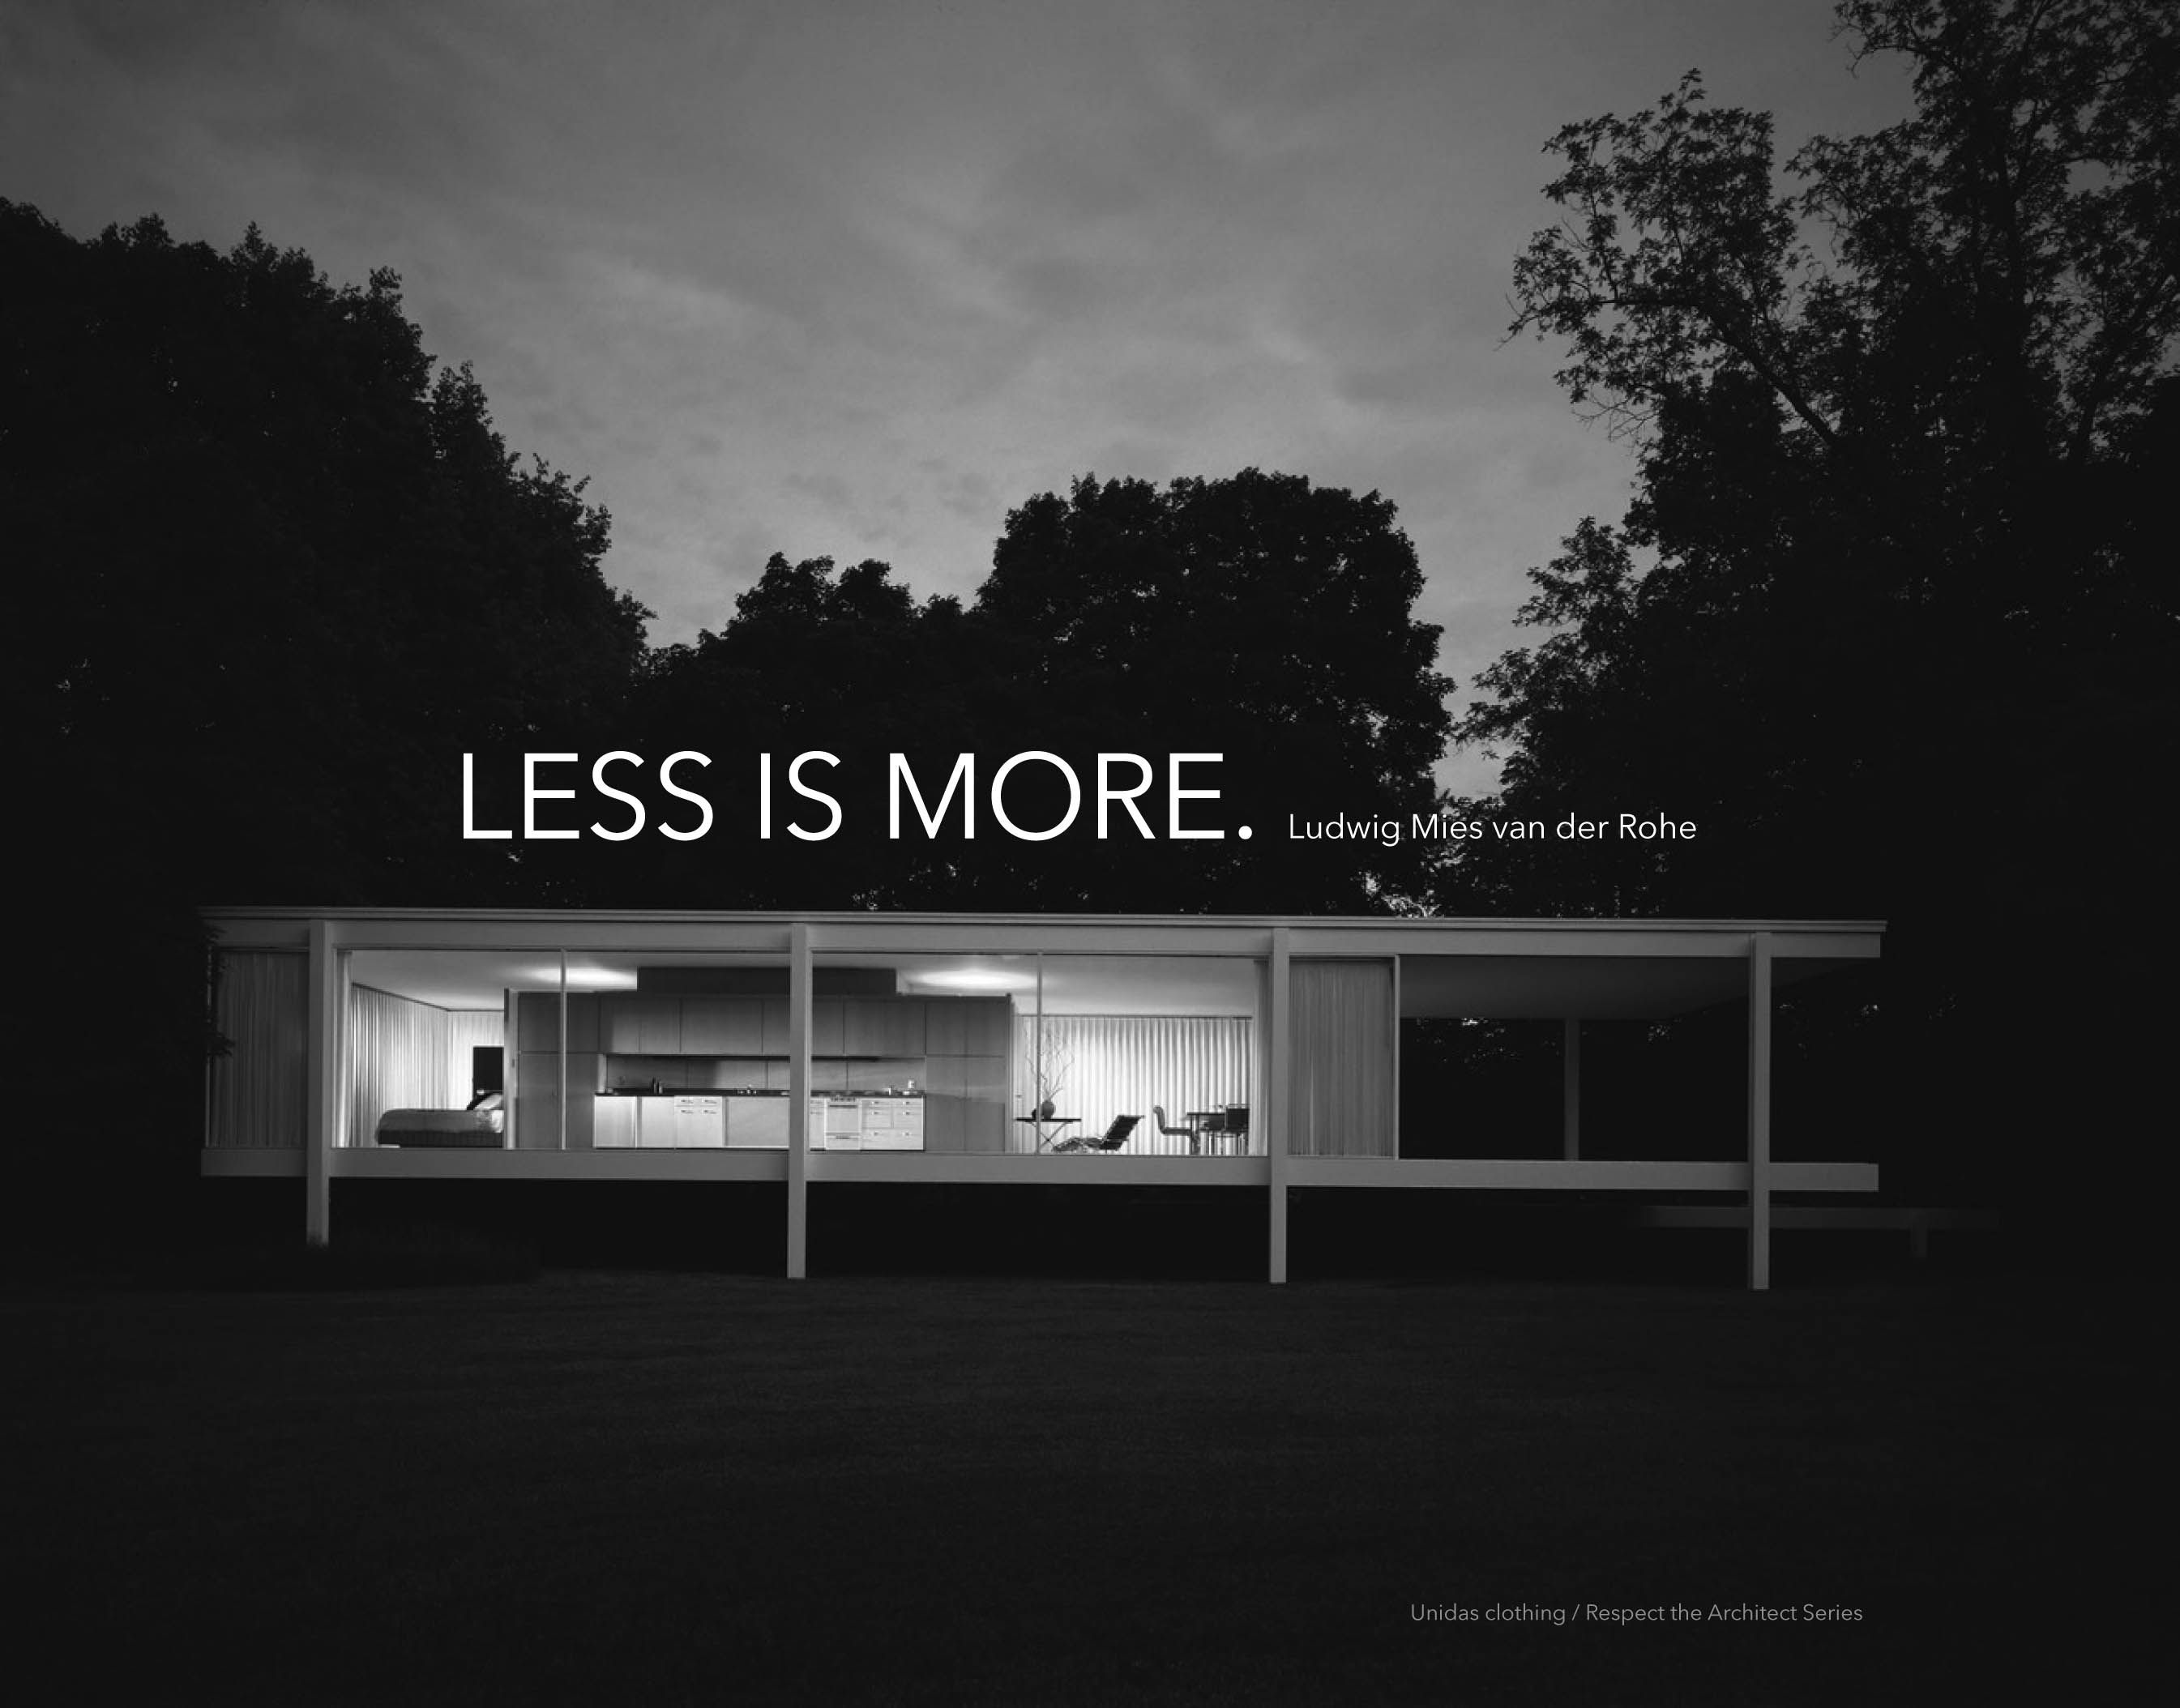 Farnsworth house by mies van der rohe exterior 8 jpg - Mies Van Der Rohe Architecture Quotesmodern Architecturefarnsworth Housefuture